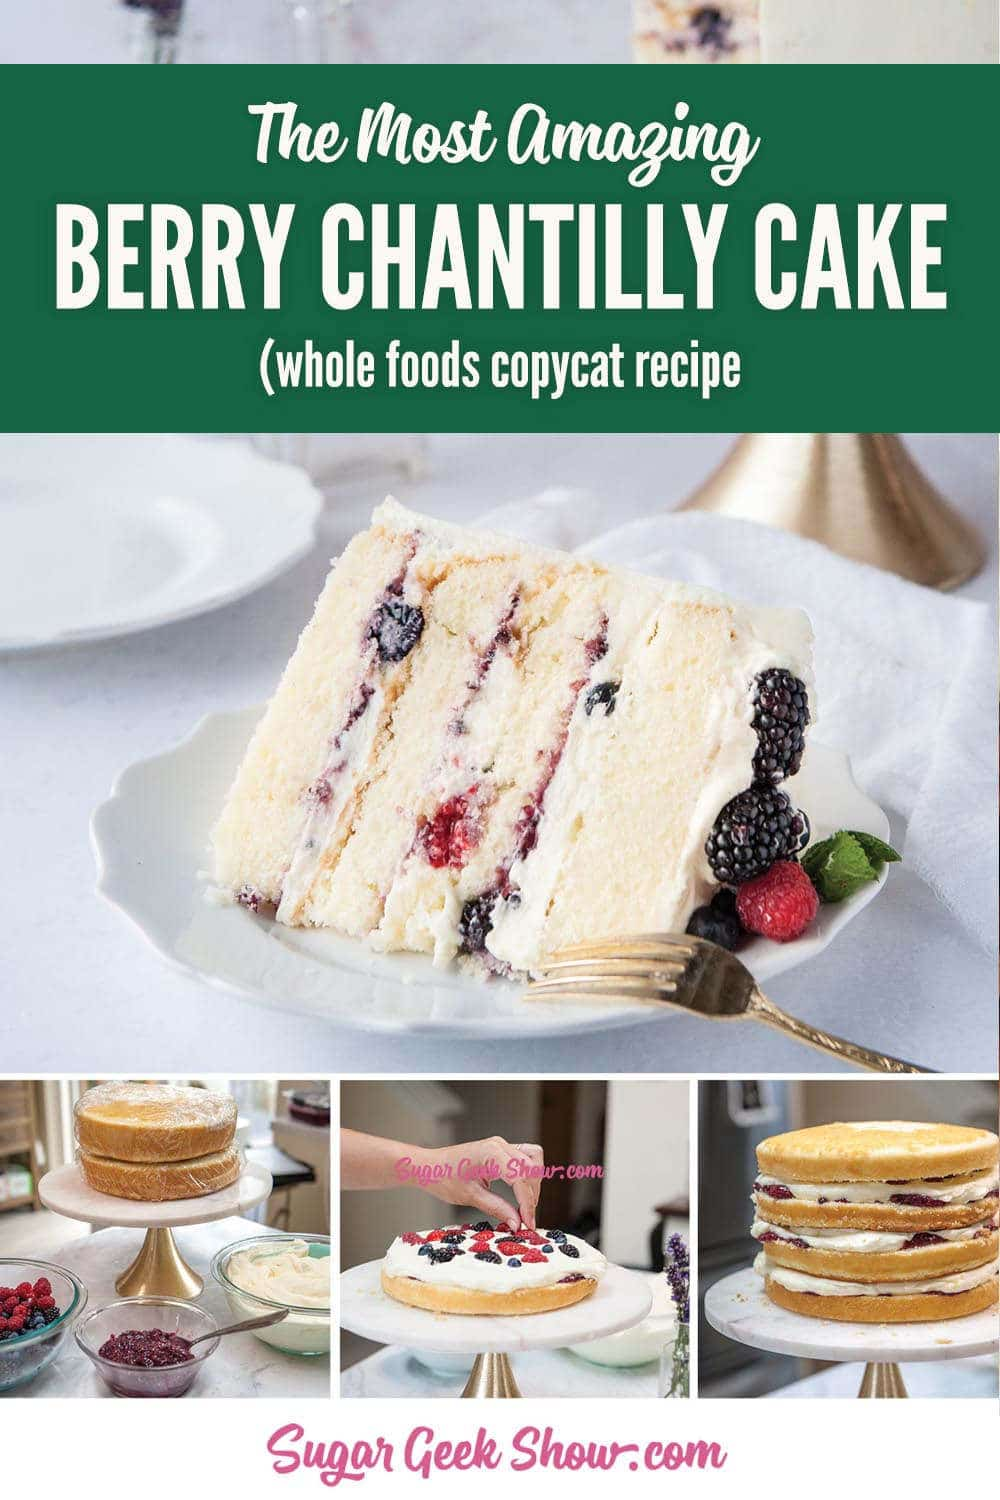 whole foods berry Chantilly cake recipe